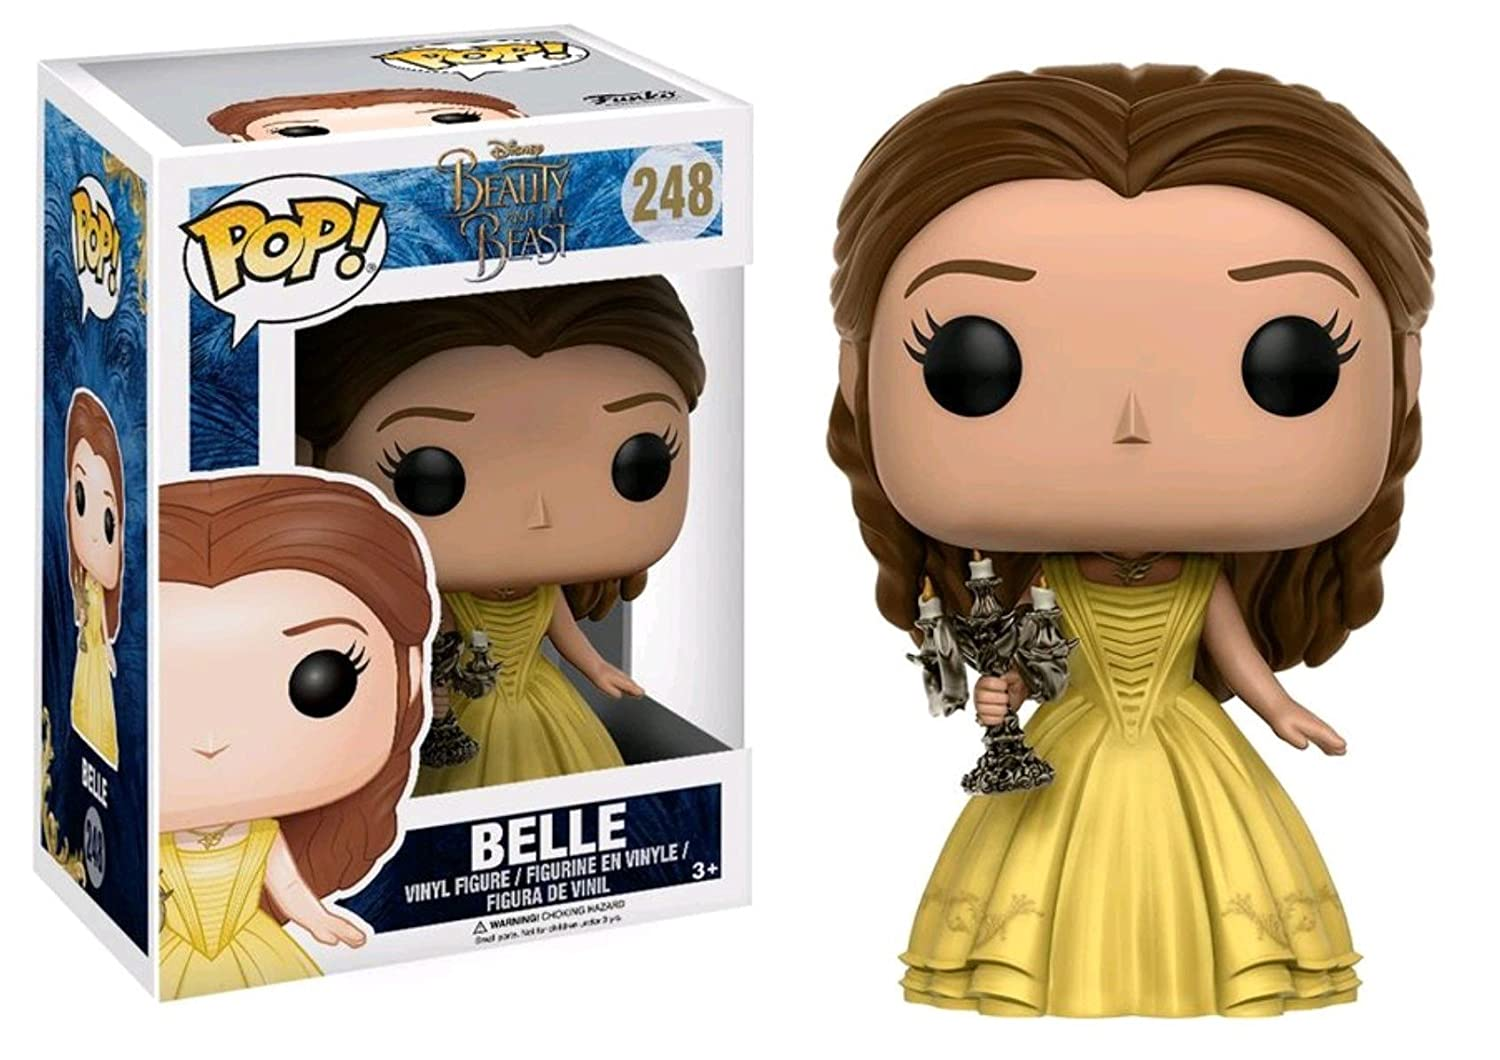 Beauty /& The Beast Belle with Candlestick 248 exclusive - Funko Pop!